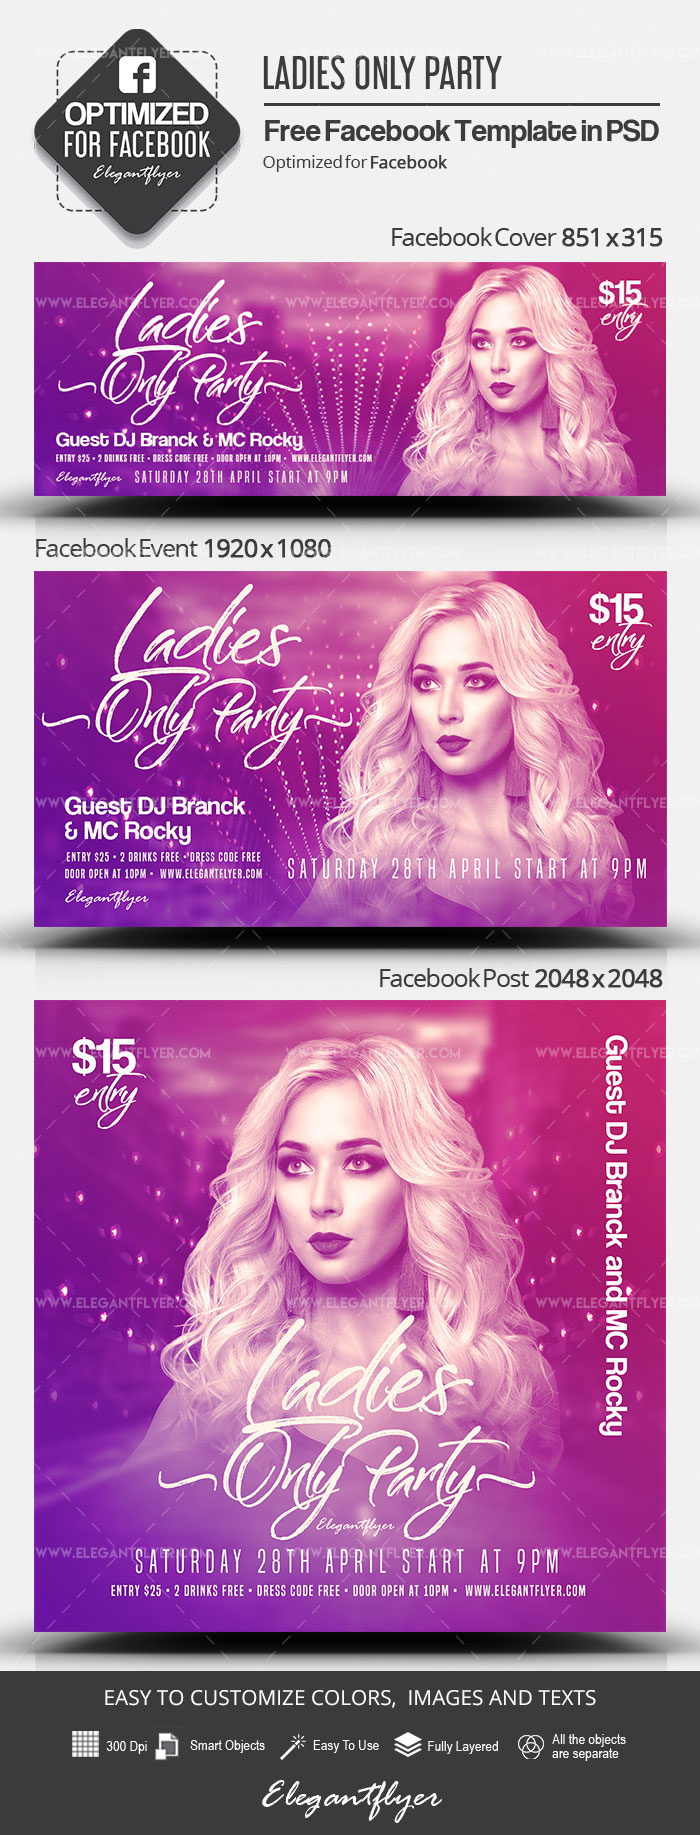 Ladies Only Party – Free Facebook Cover Template in PSD + Post + Event cover